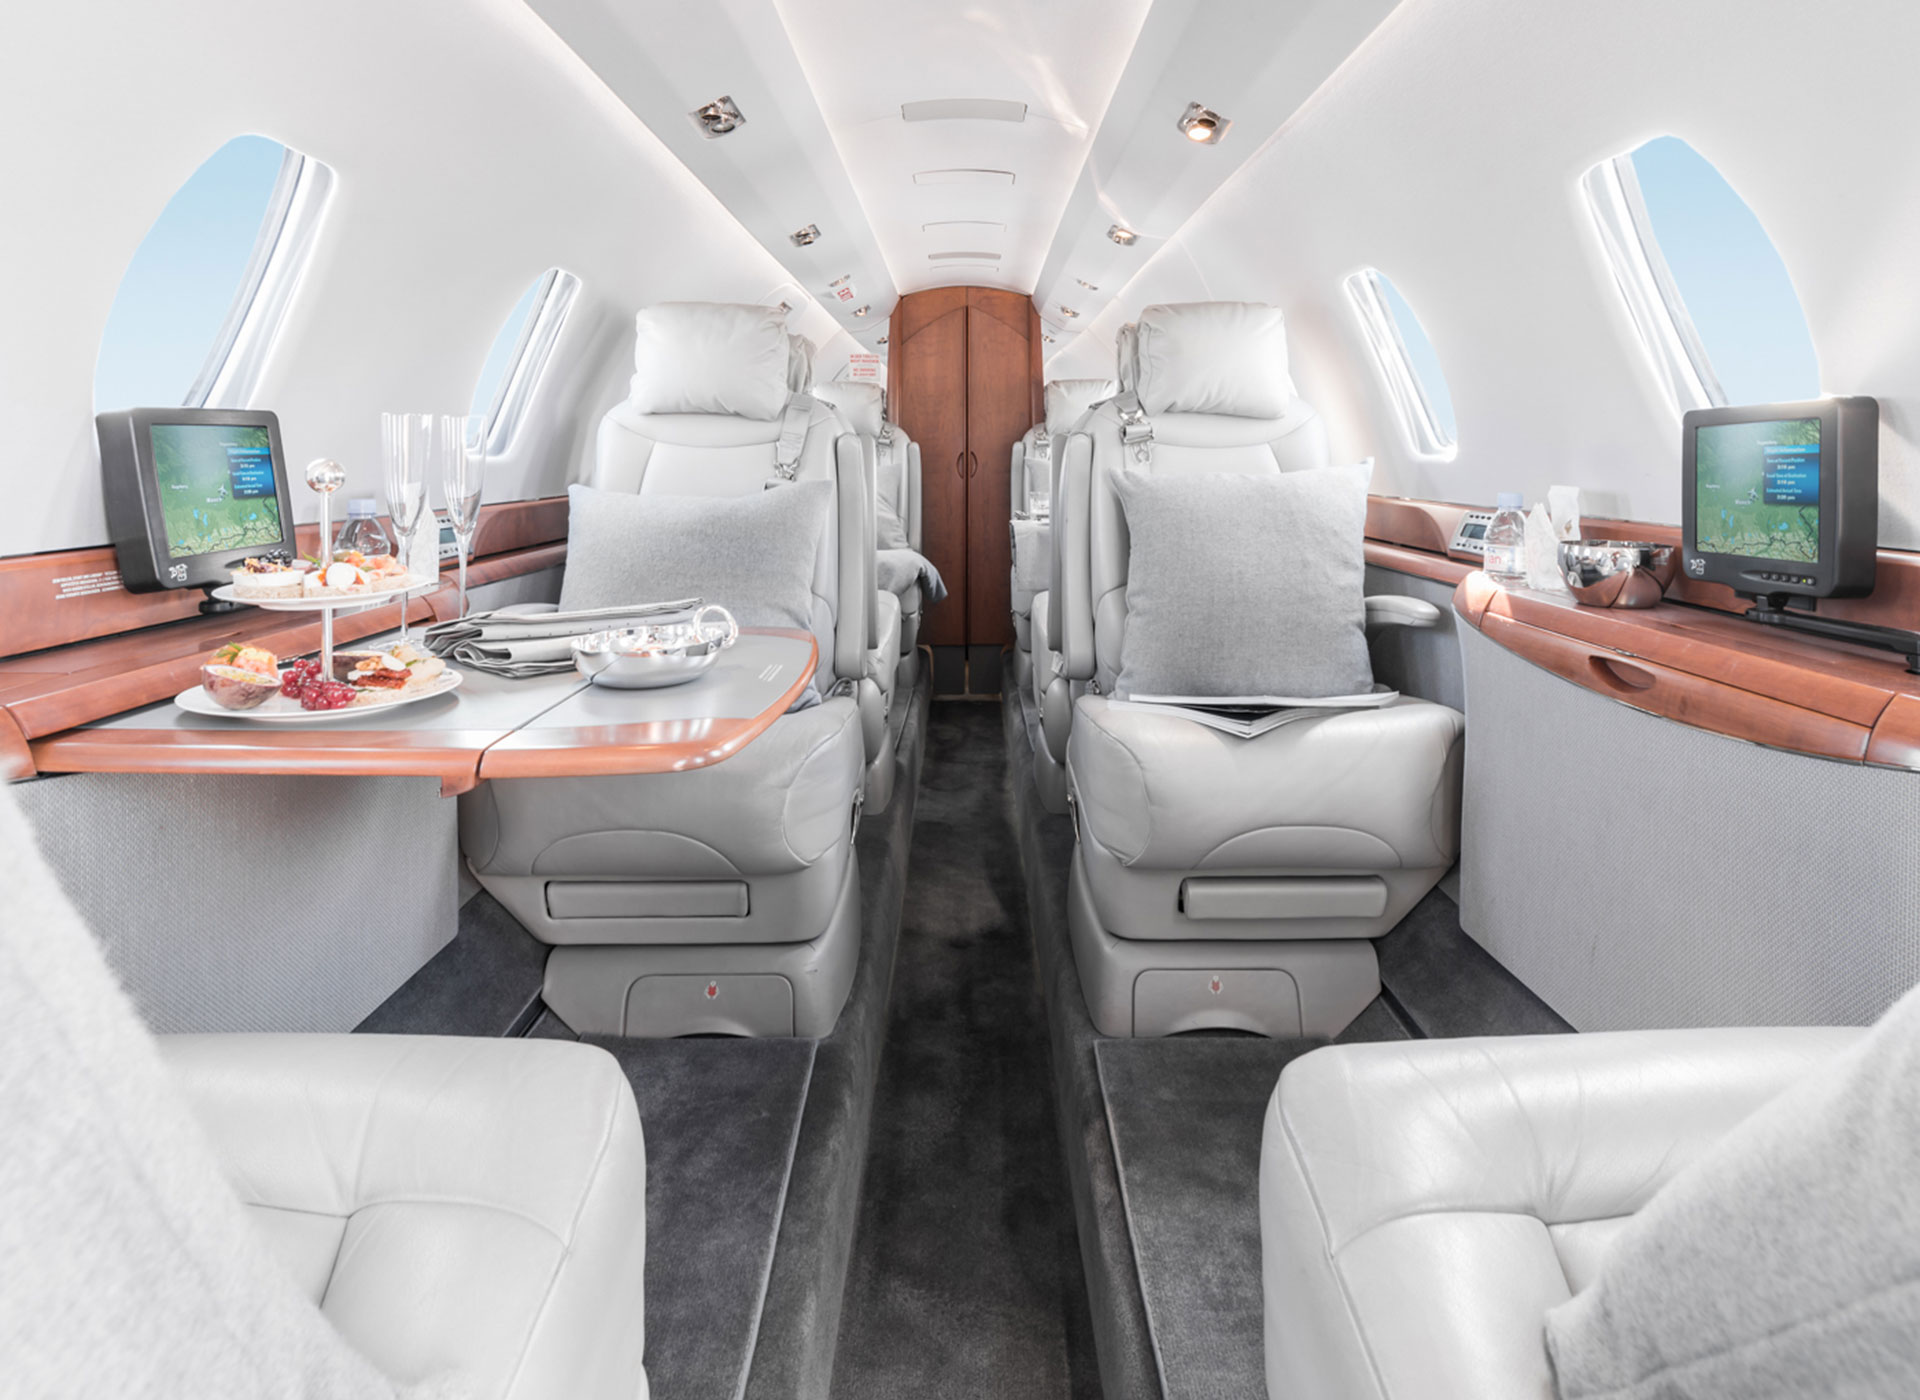 VVIP-travel-privat-jet-Interior